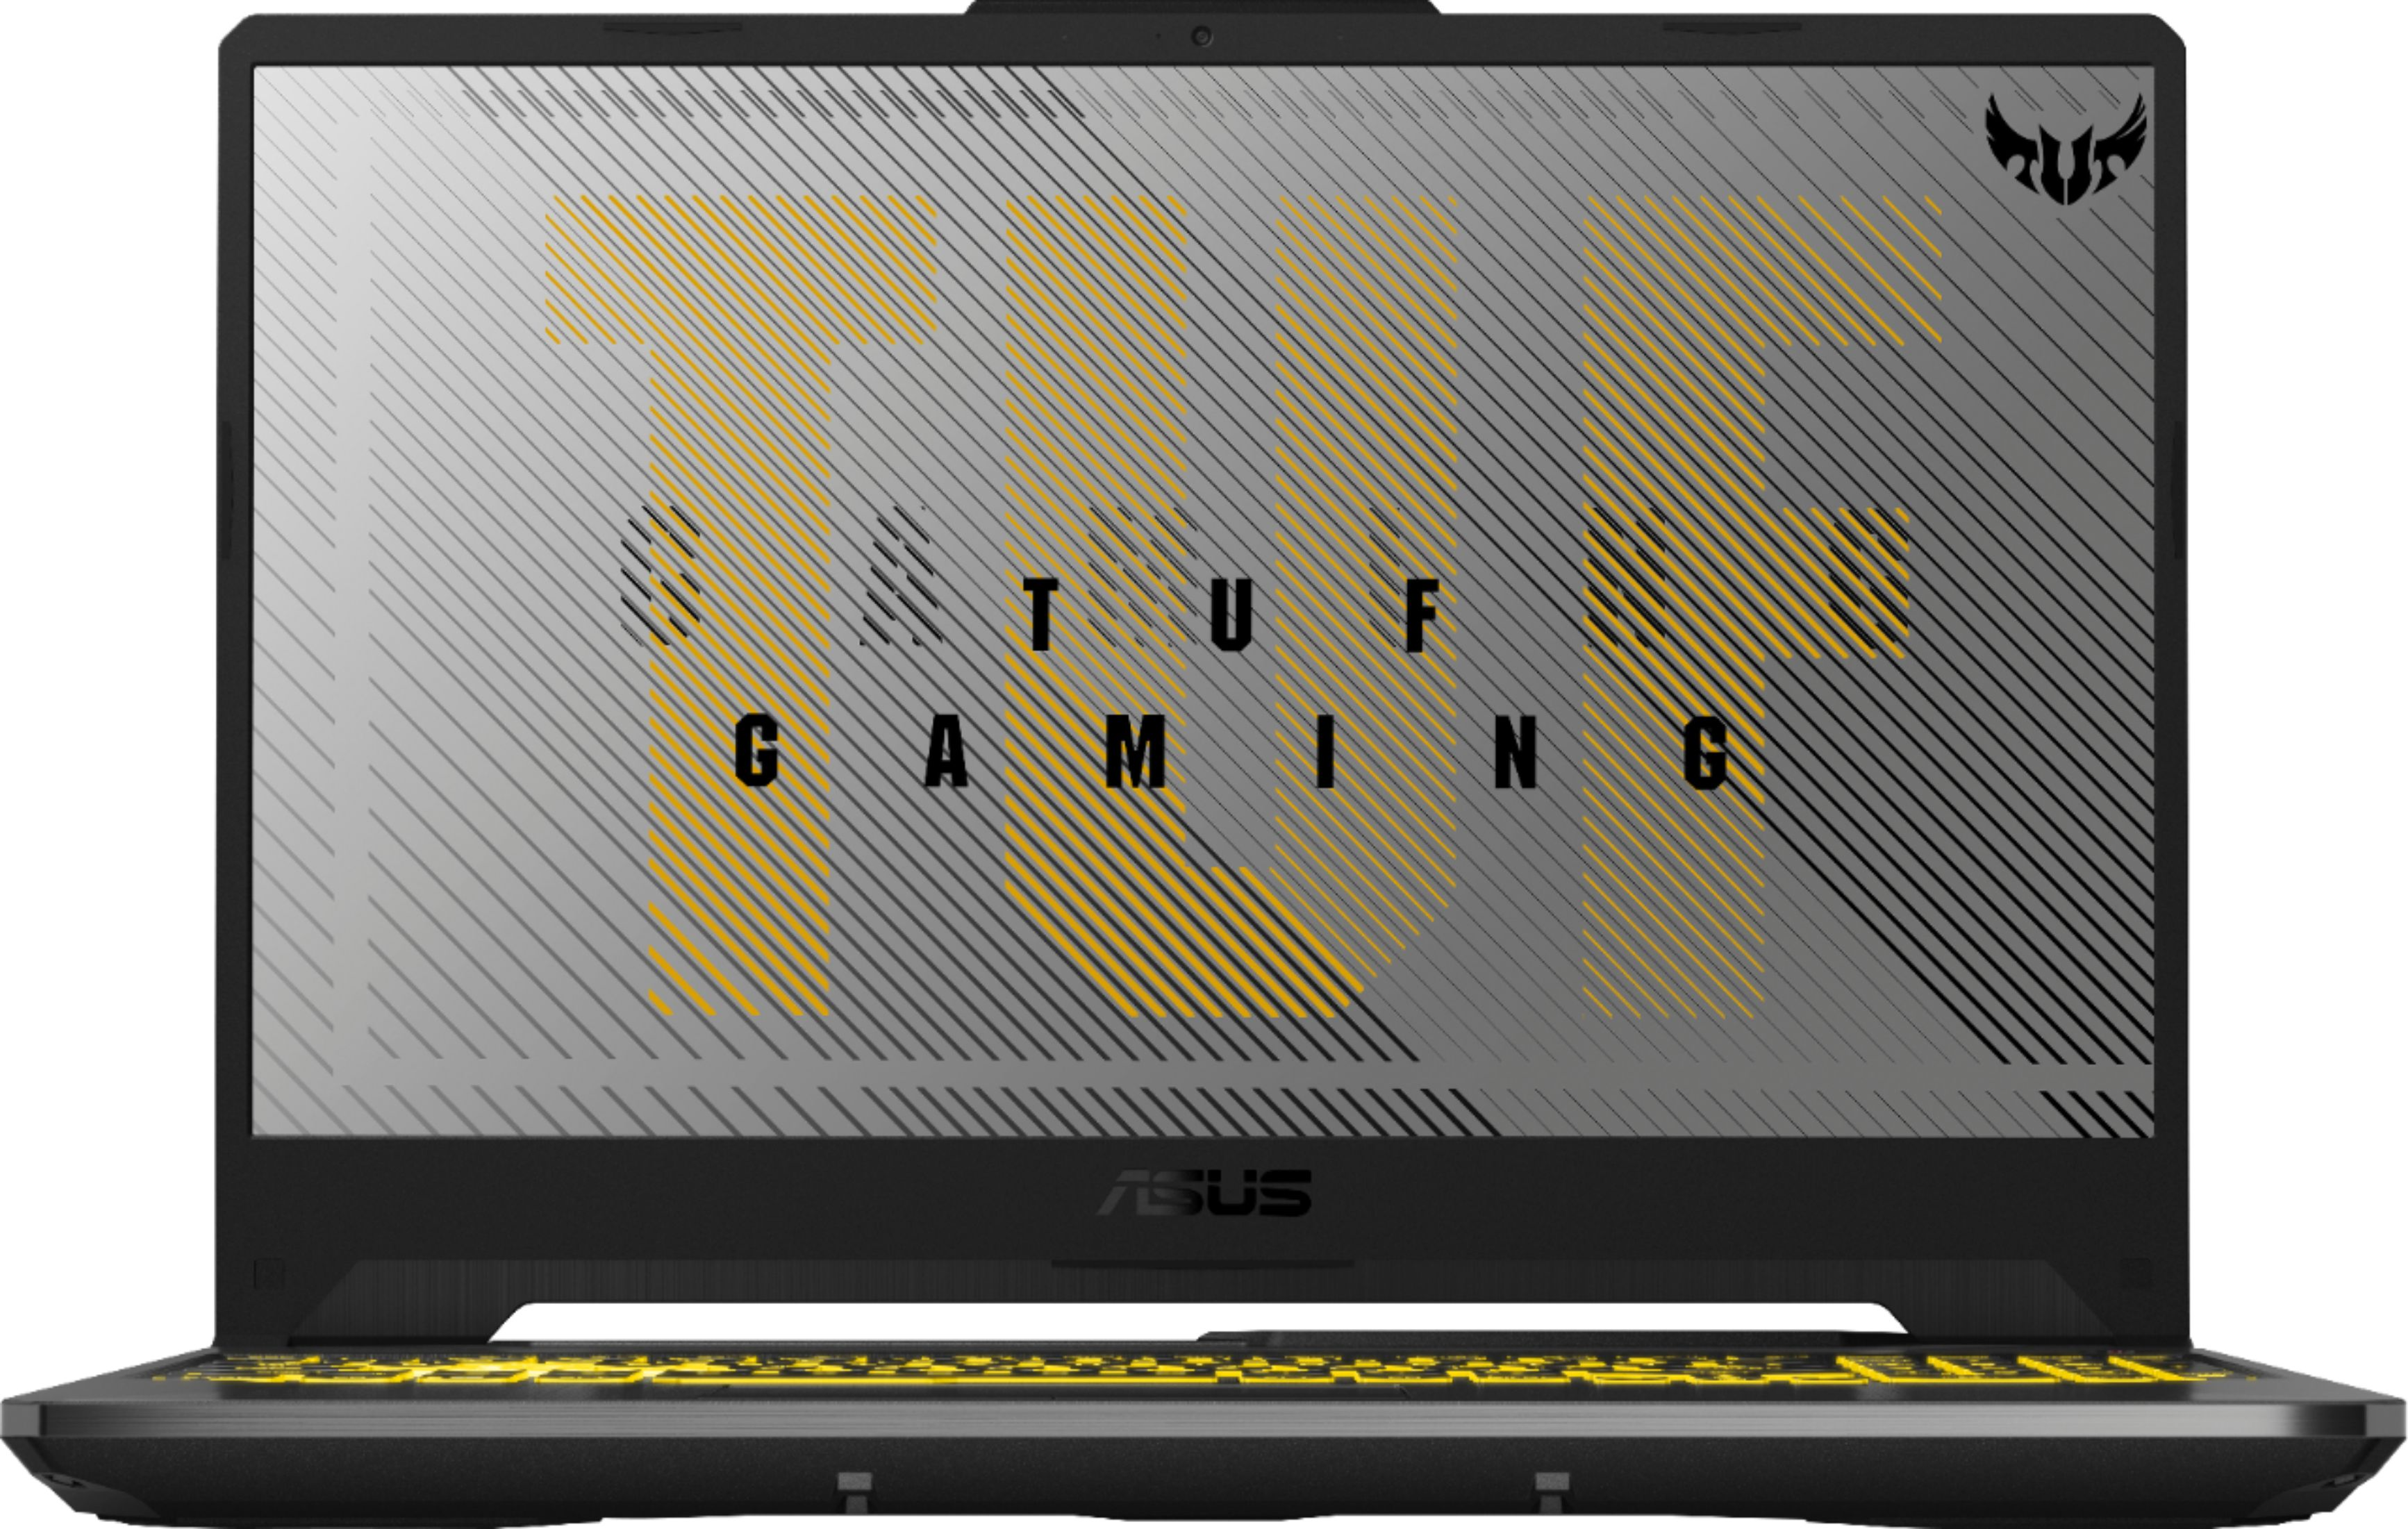 """Front Zoom. Asus TUF A15 TUF506IV-AS76 15.6"""" Gaming Notebook AMD Ryzen 7 4800H 16GB RAM 1TB SSD."""